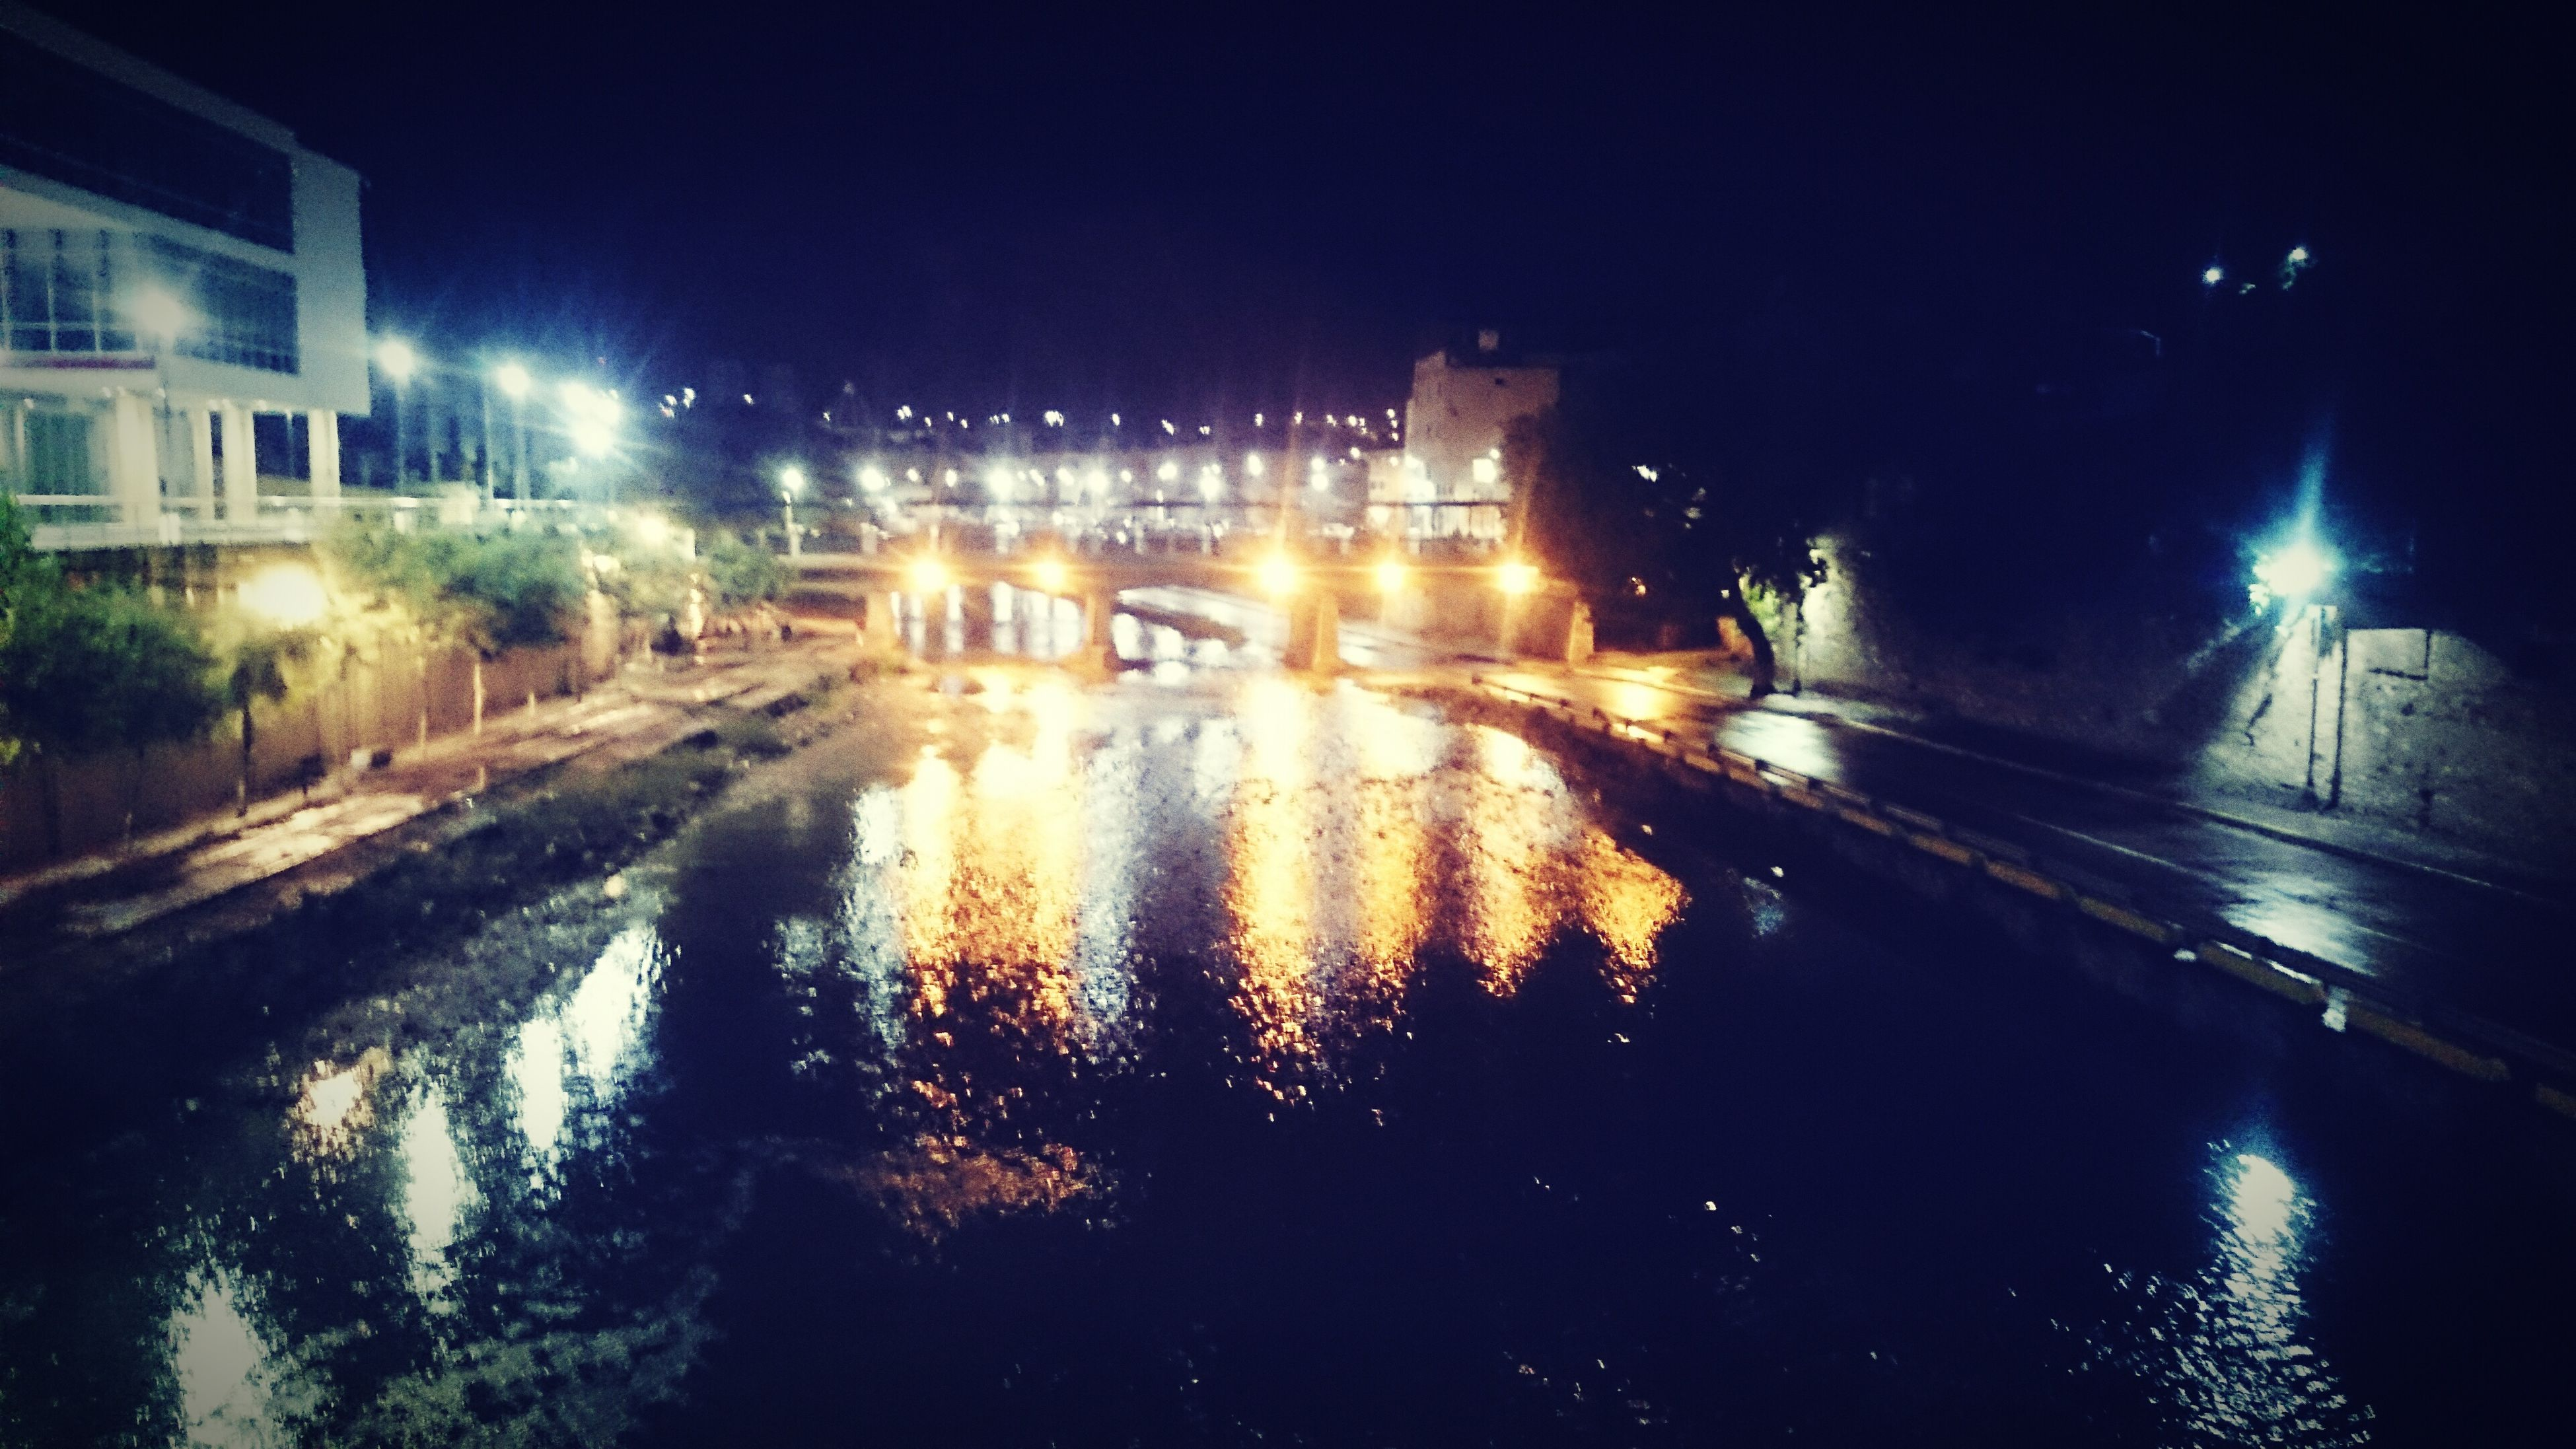 night, illuminated, water, building exterior, architecture, built structure, reflection, street light, street, city, wet, transportation, waterfront, puddle, road, lighting equipment, canal, outdoors, sky, rain